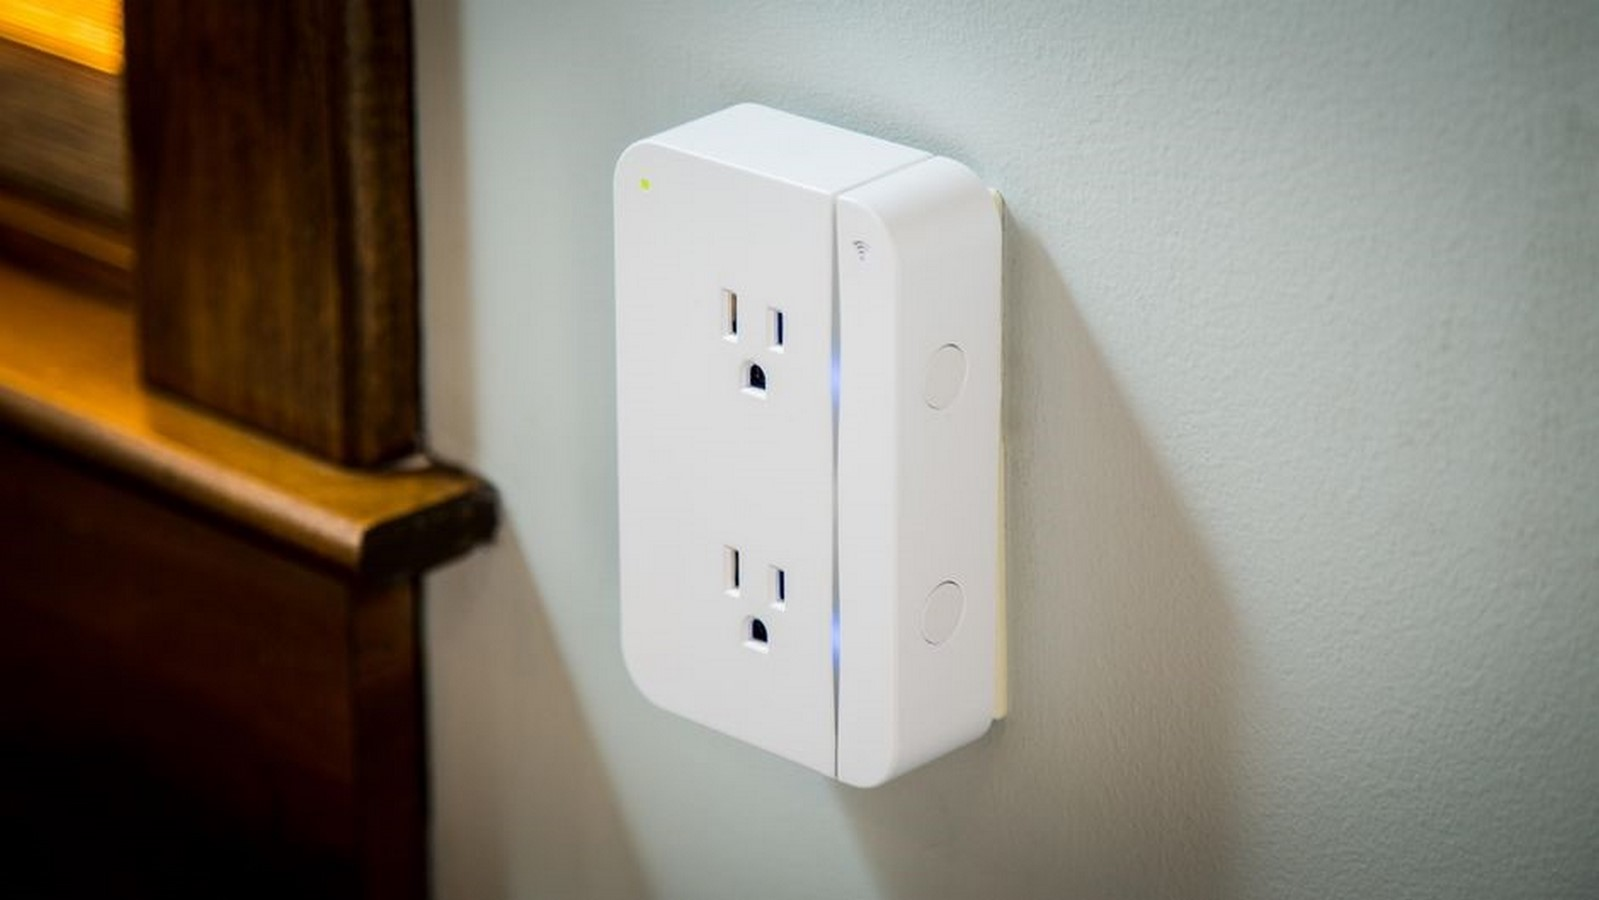 10 smart gadgets to help update your home - Sheet1